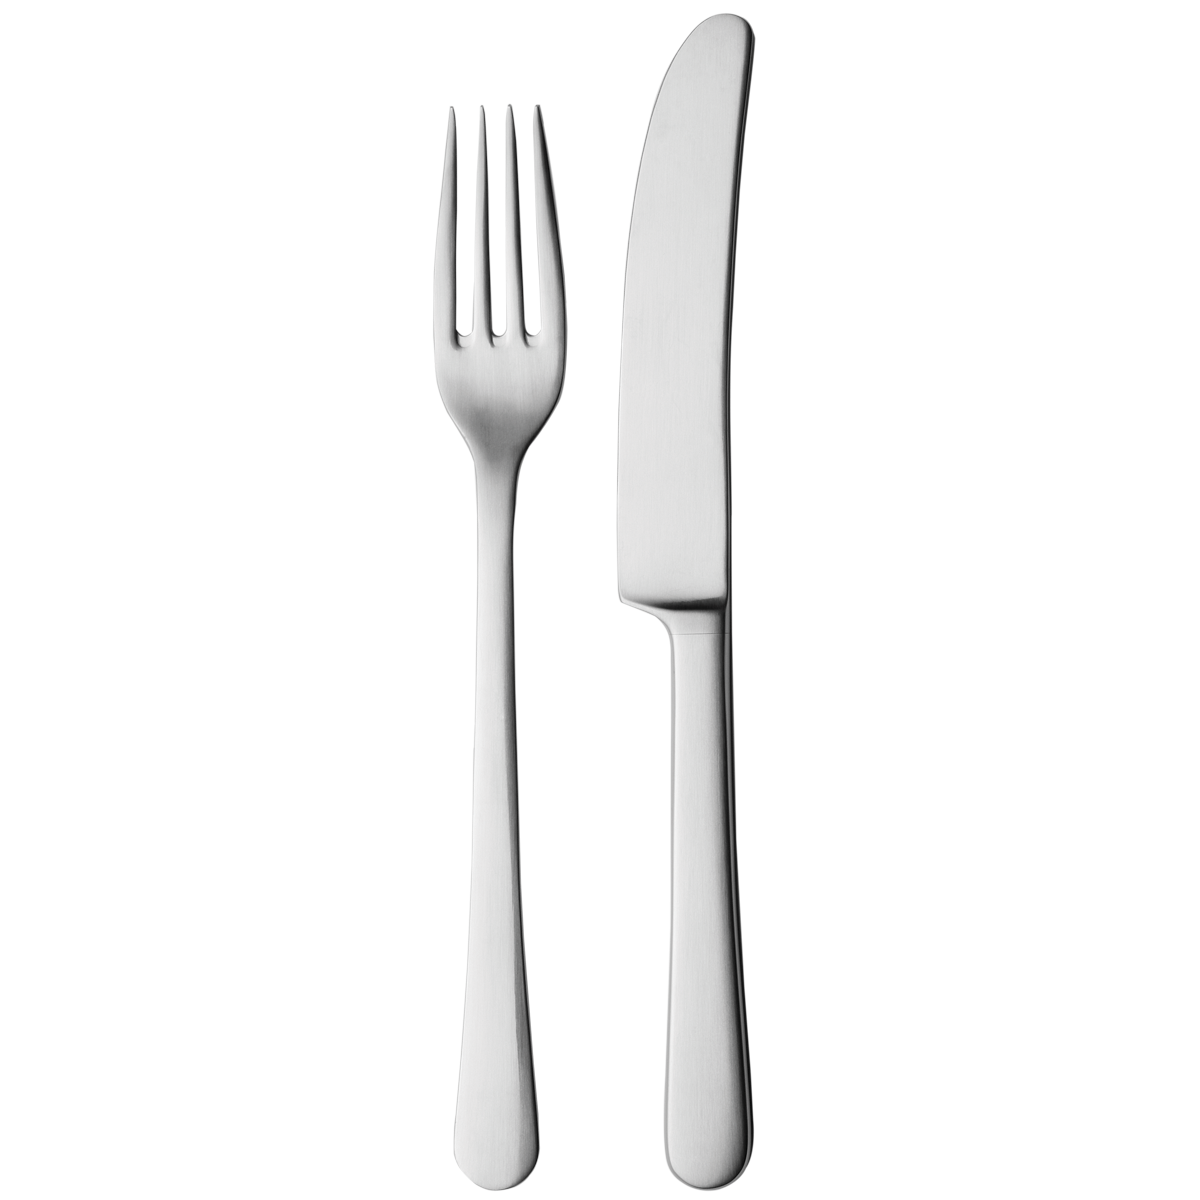 Fork and knife png. High quality cliparts for